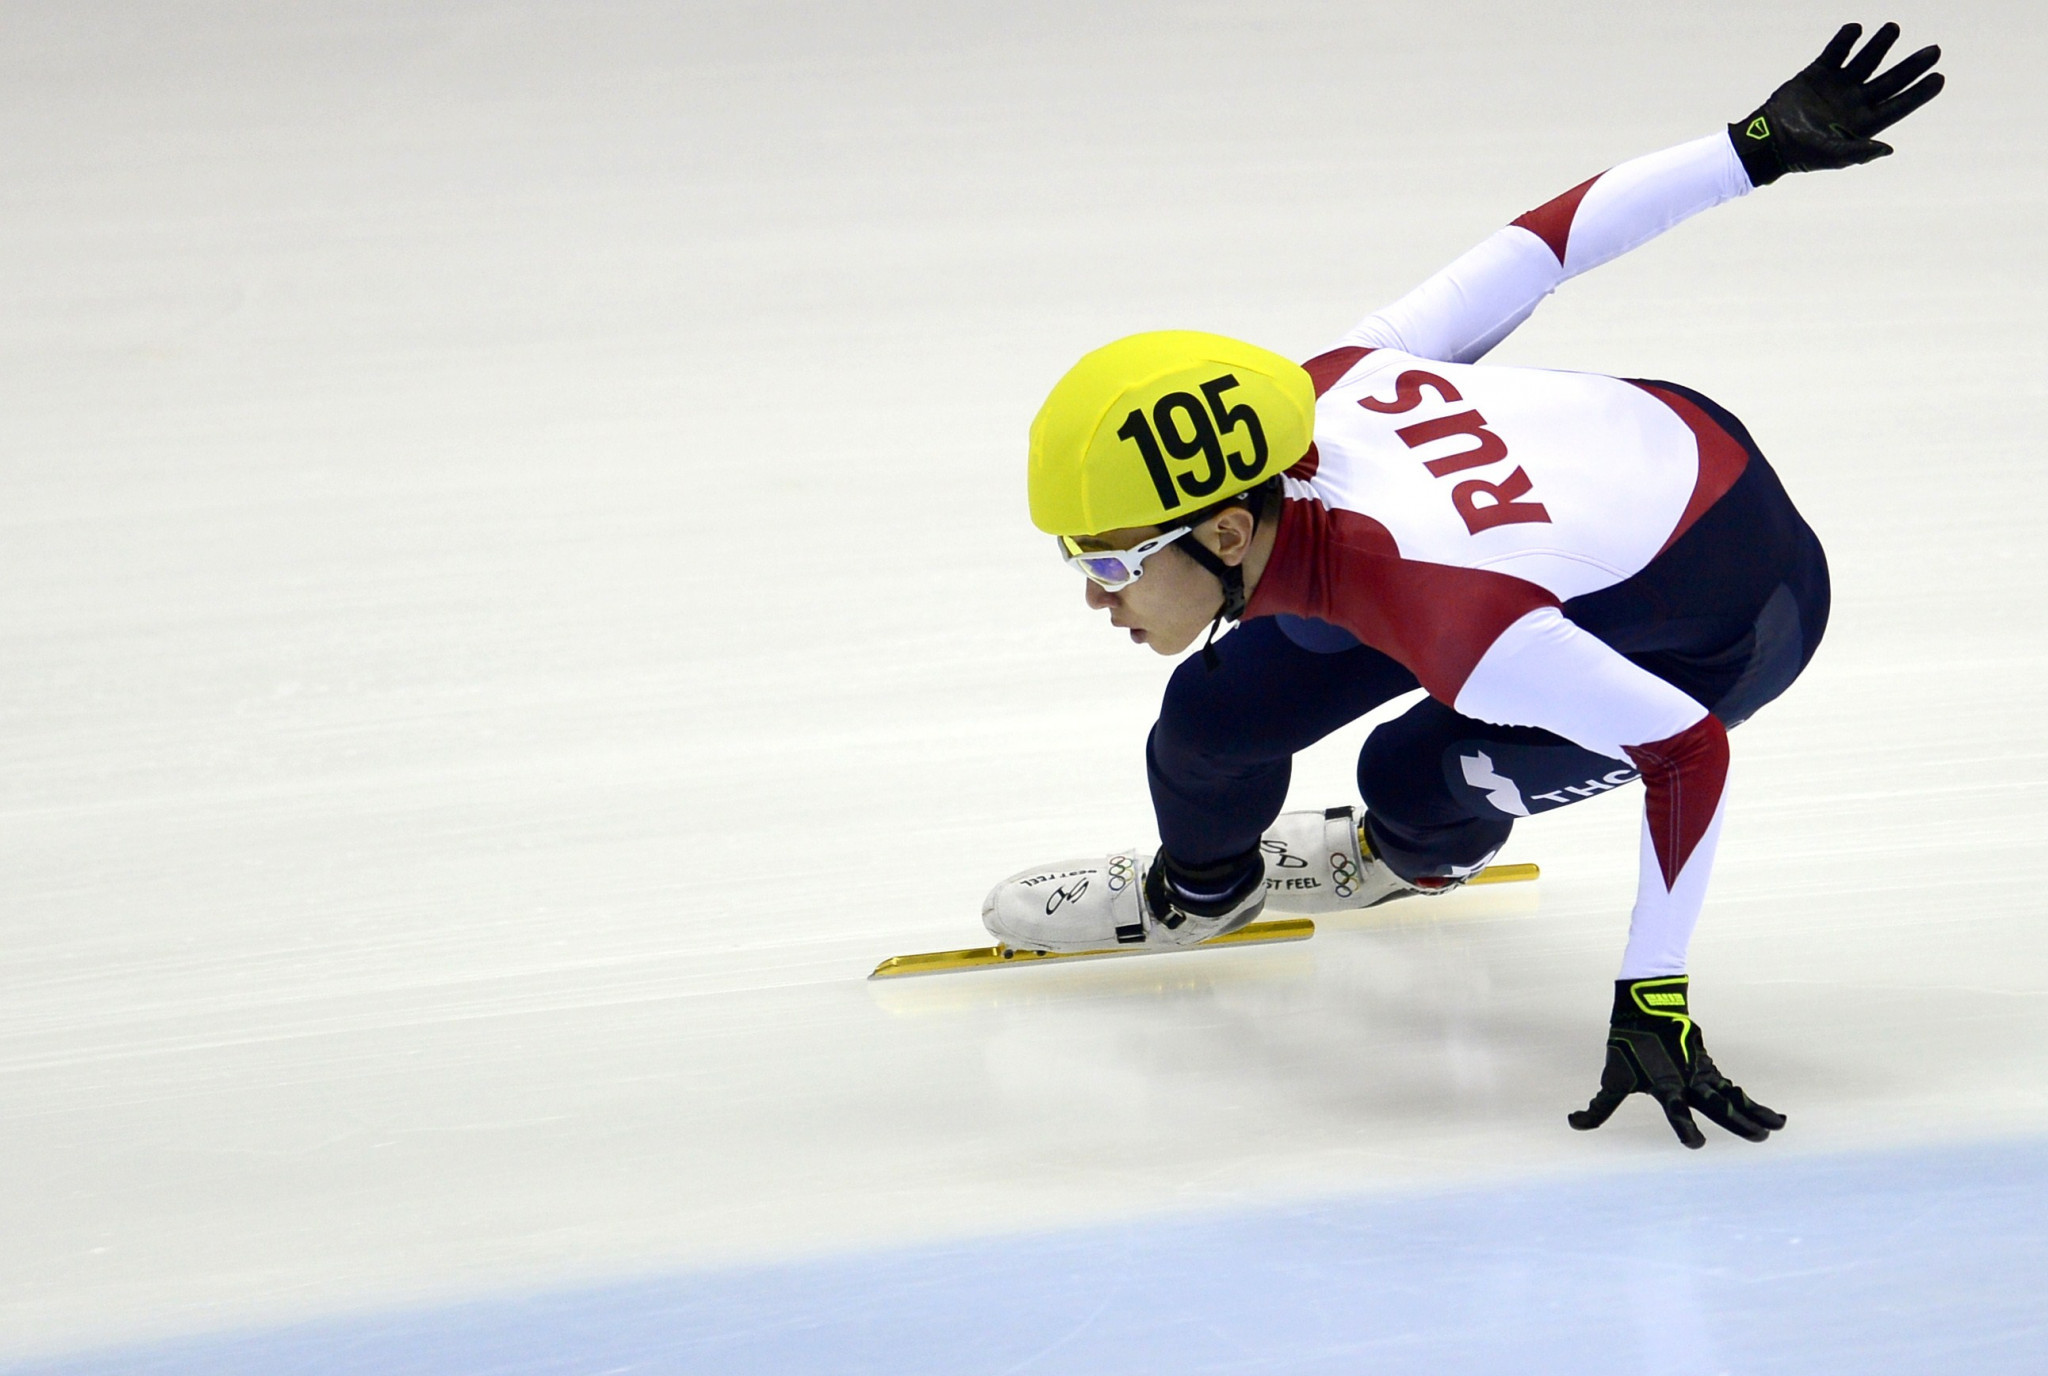 Viktor Ahn won three gold medals and one bronze representing Russia at Sochi 2014 ©Getty Images